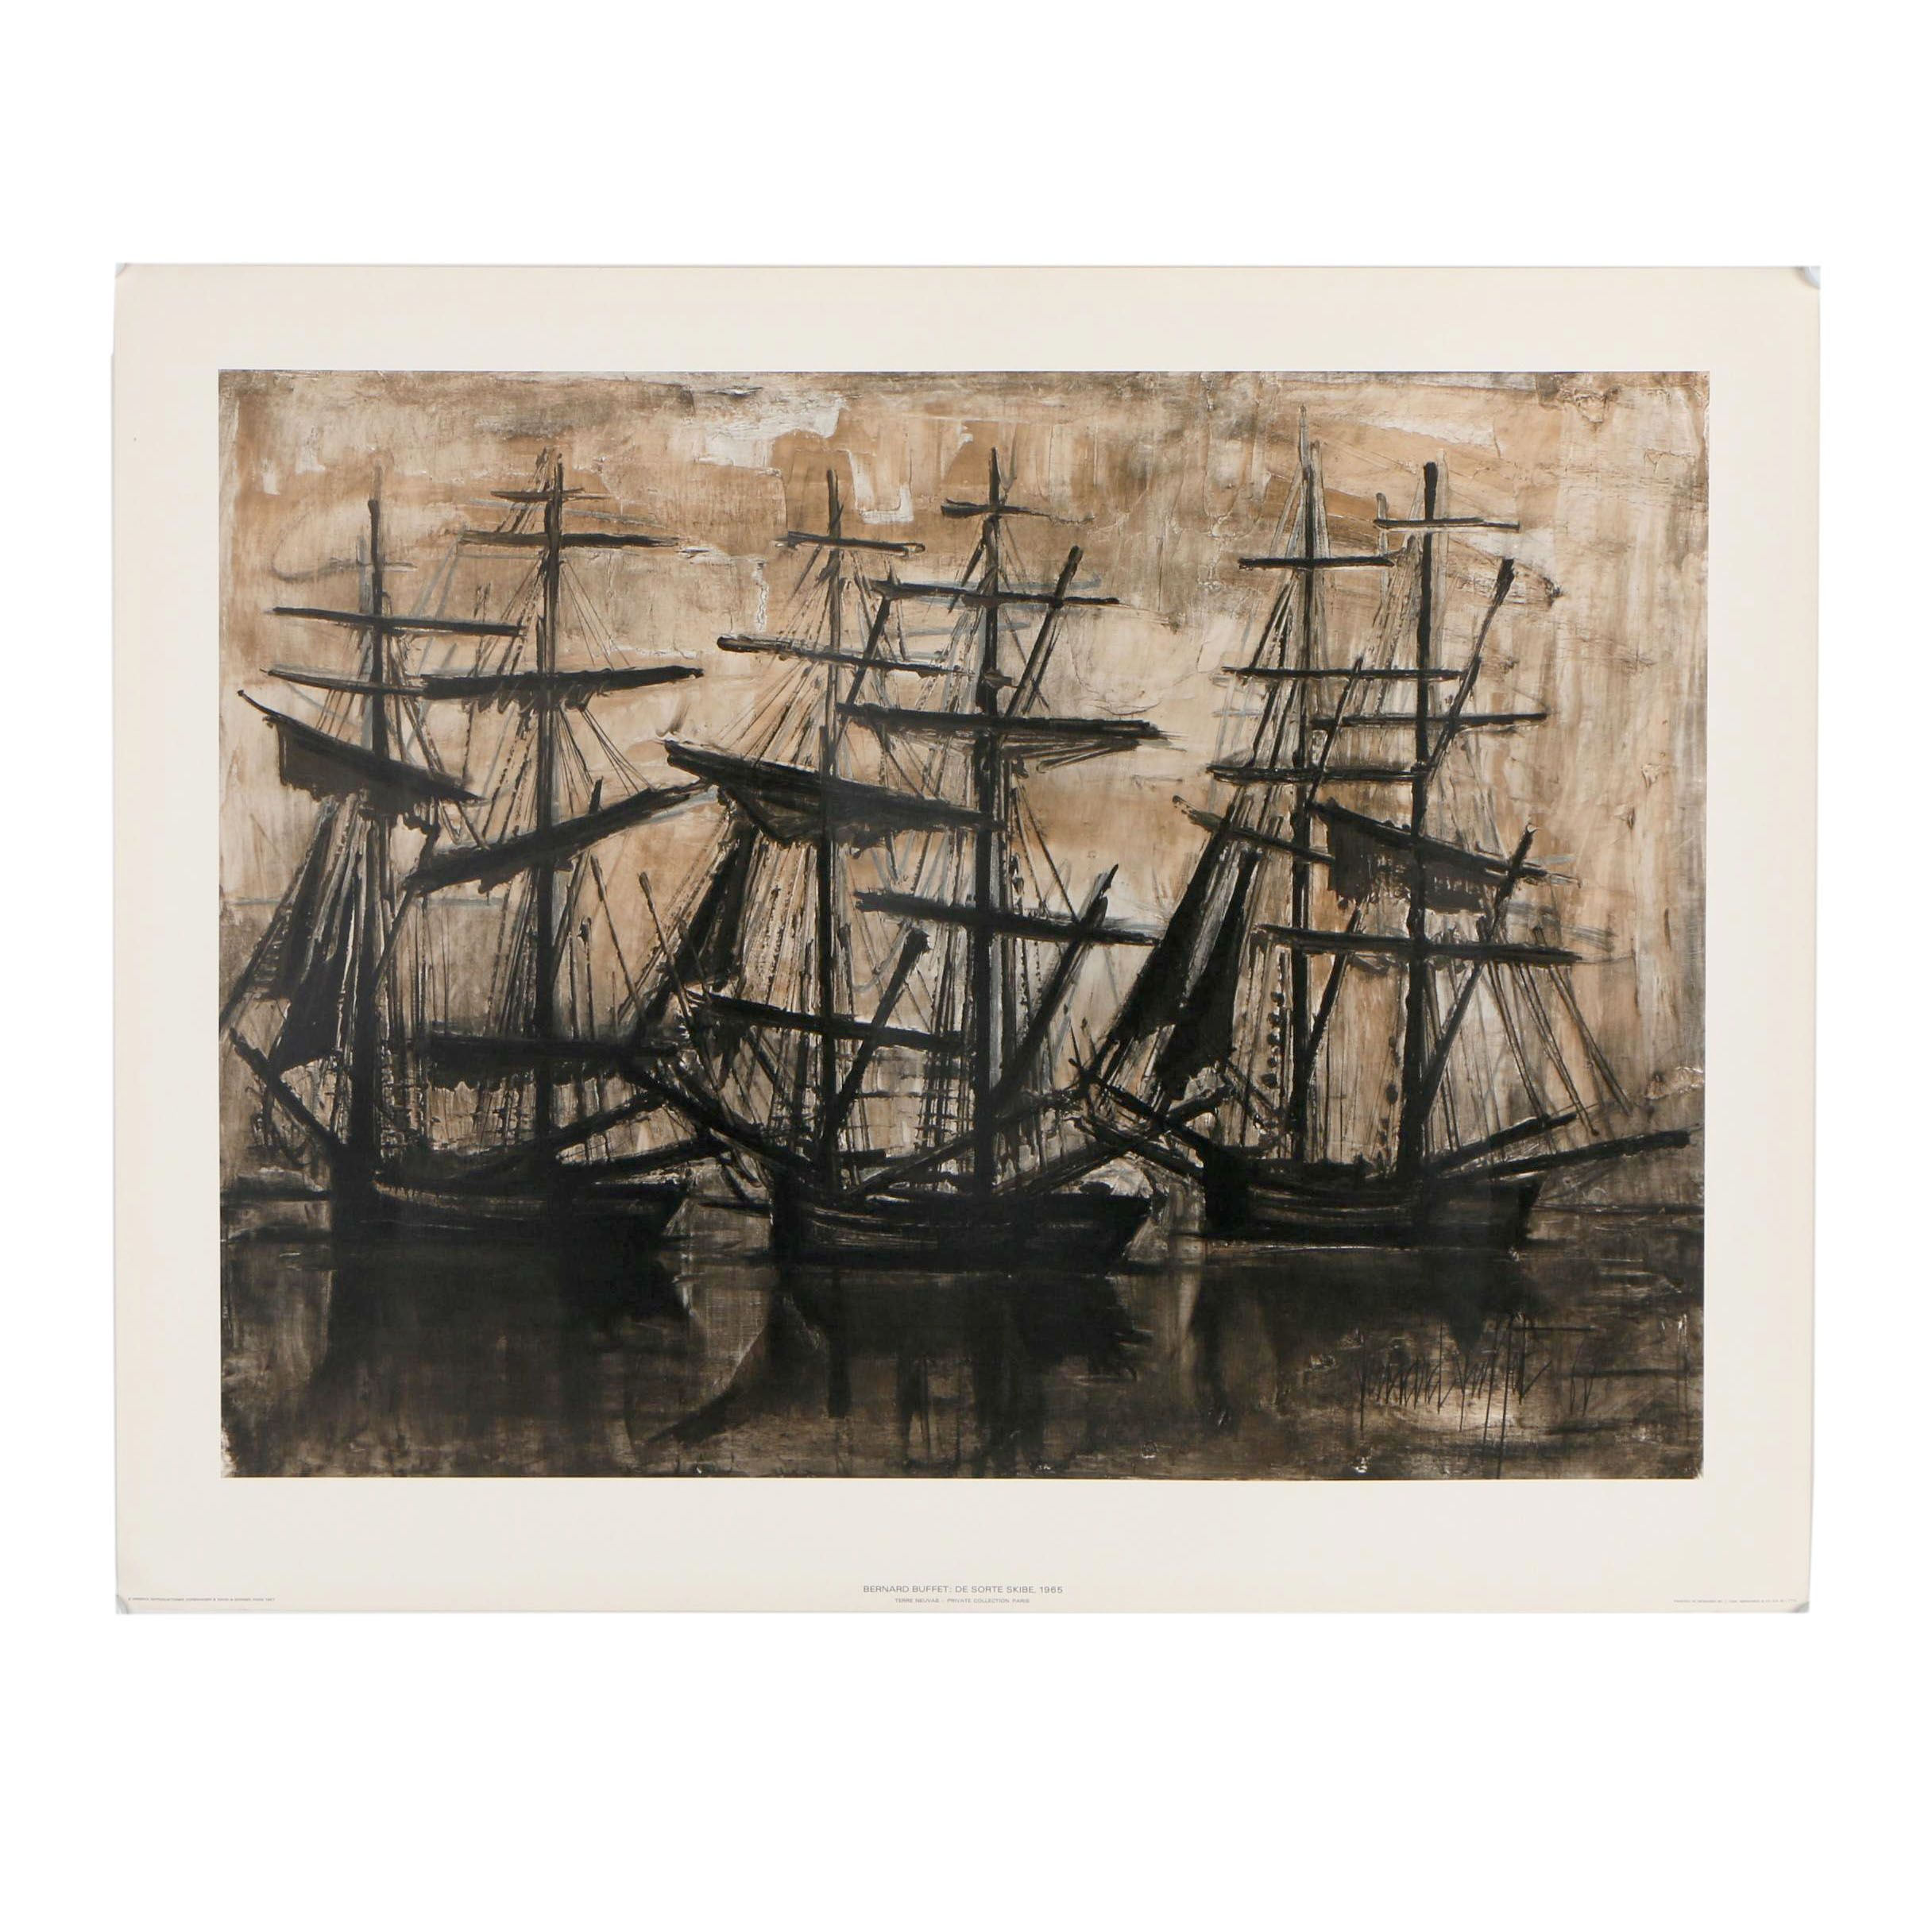 "After Bernard Buffet Lithograph ""De Sorte Skibe (The Black Ships)"""